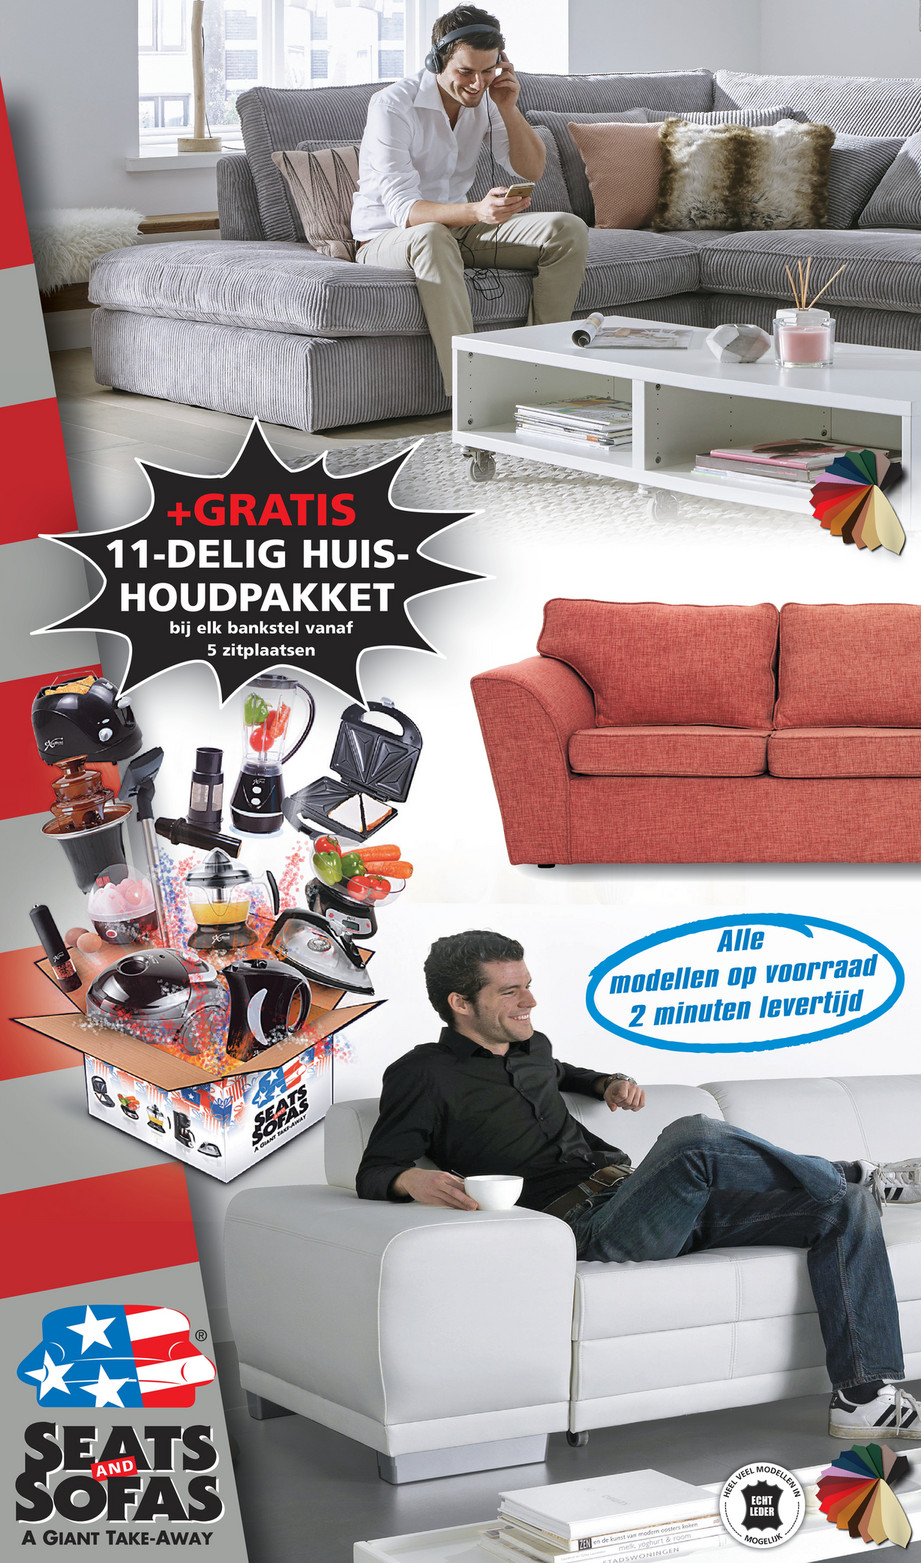 Seats En Sofas.Seats And Sofas Nl Dekoration Image Idee